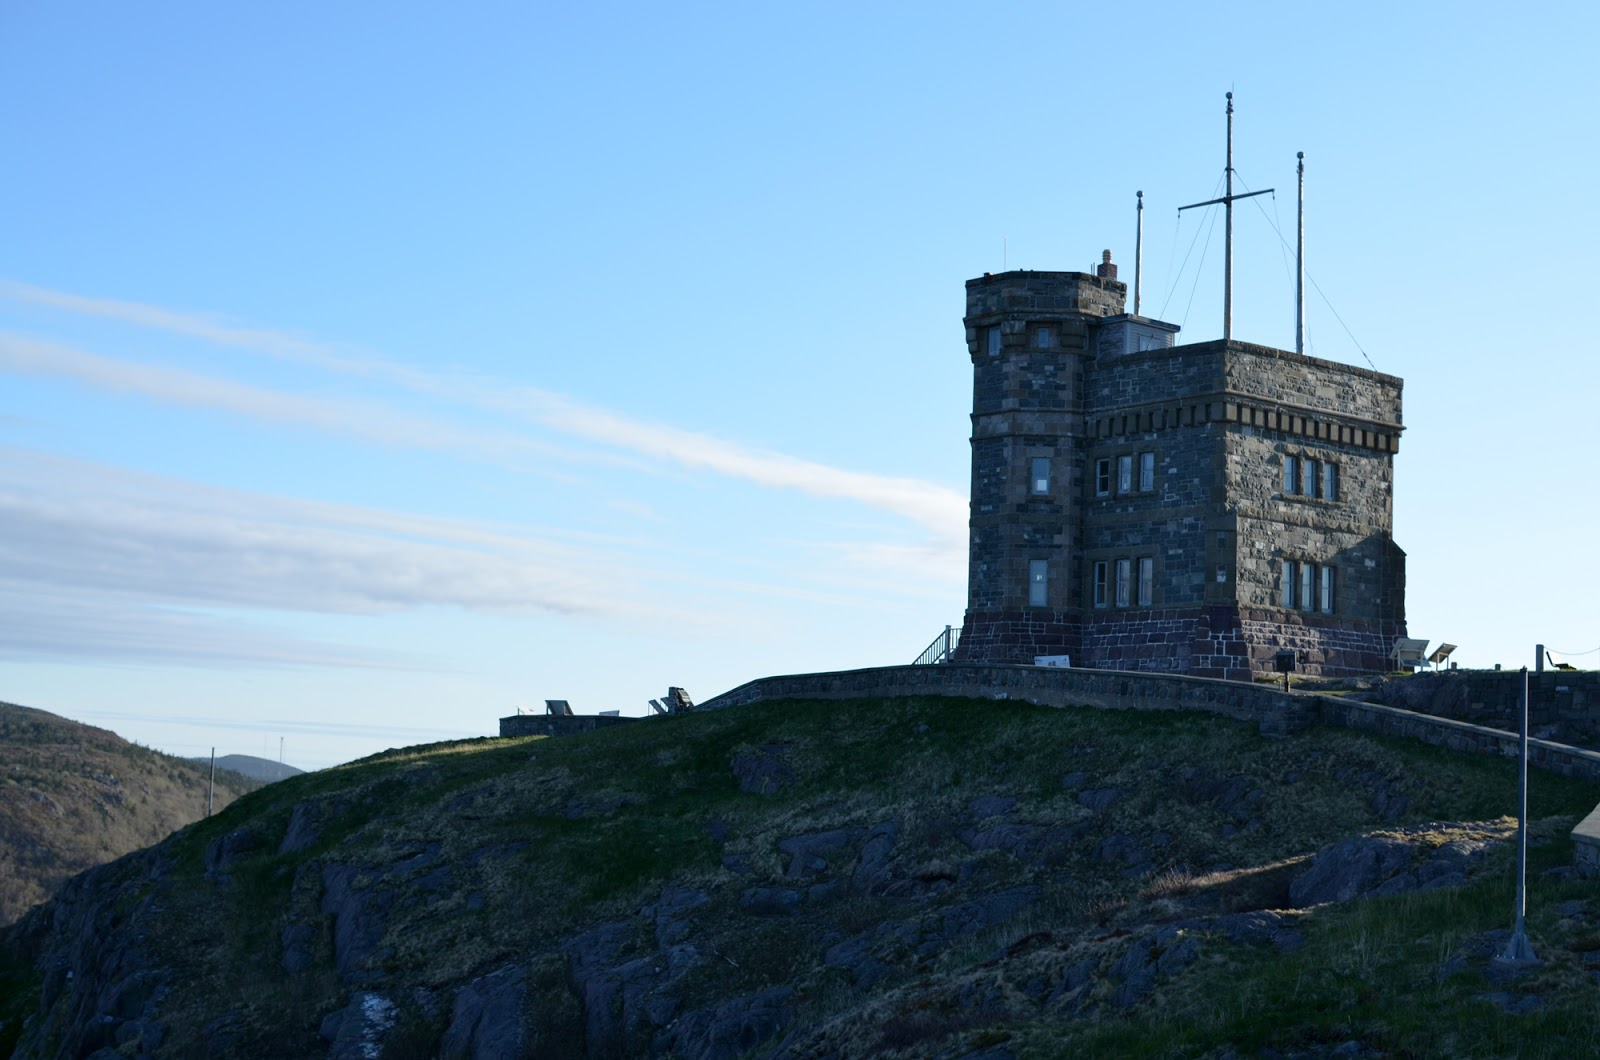 Cabot Tower at Signal Hill in St. John's